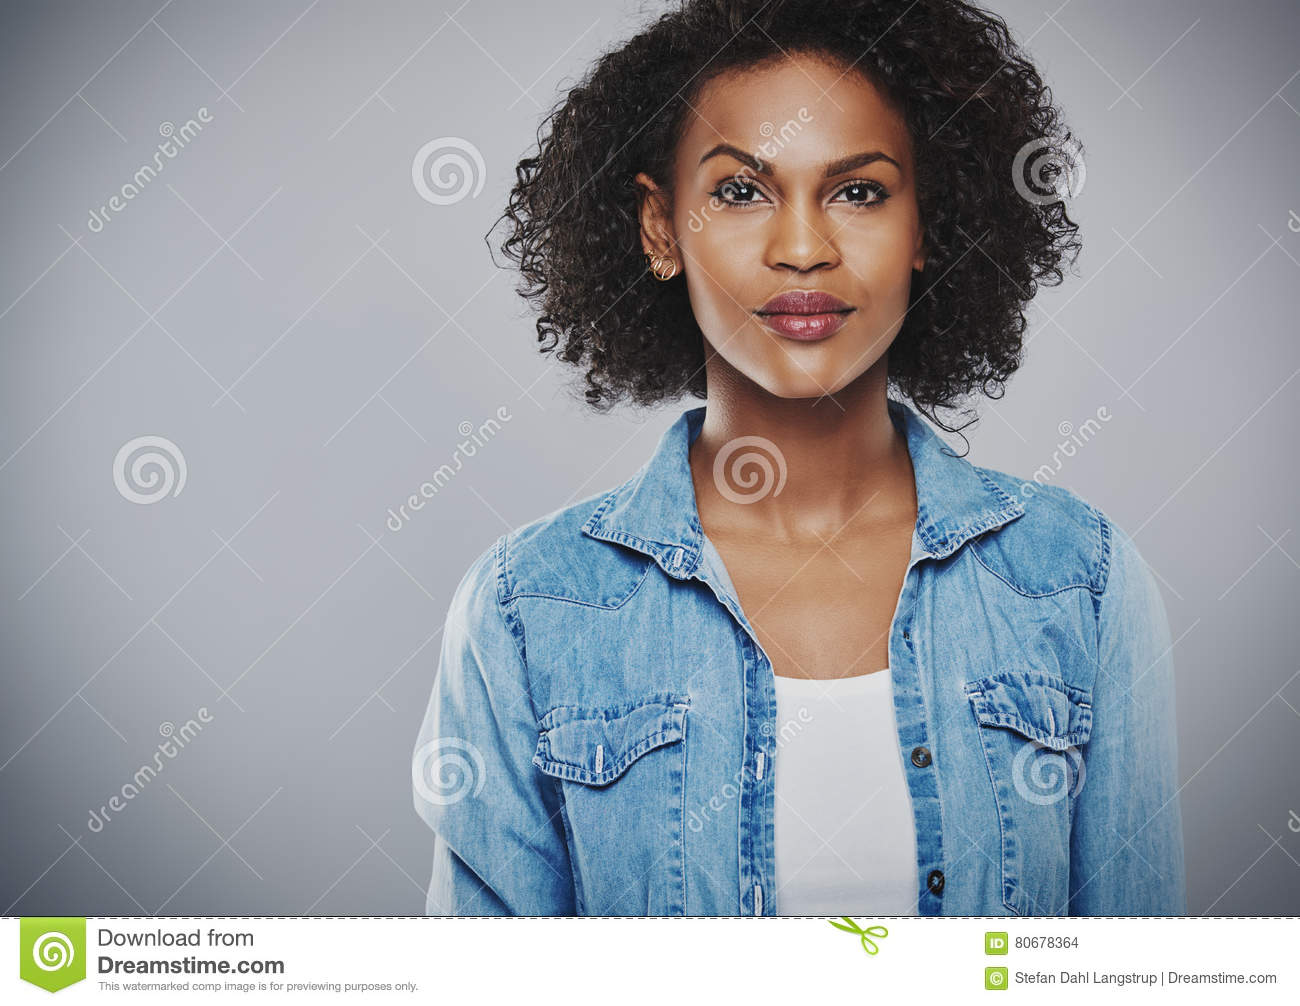 Download Interested Black Woman With Blue Jean Shirt Stock Photo - Image of intrigued, jacket: 80678364